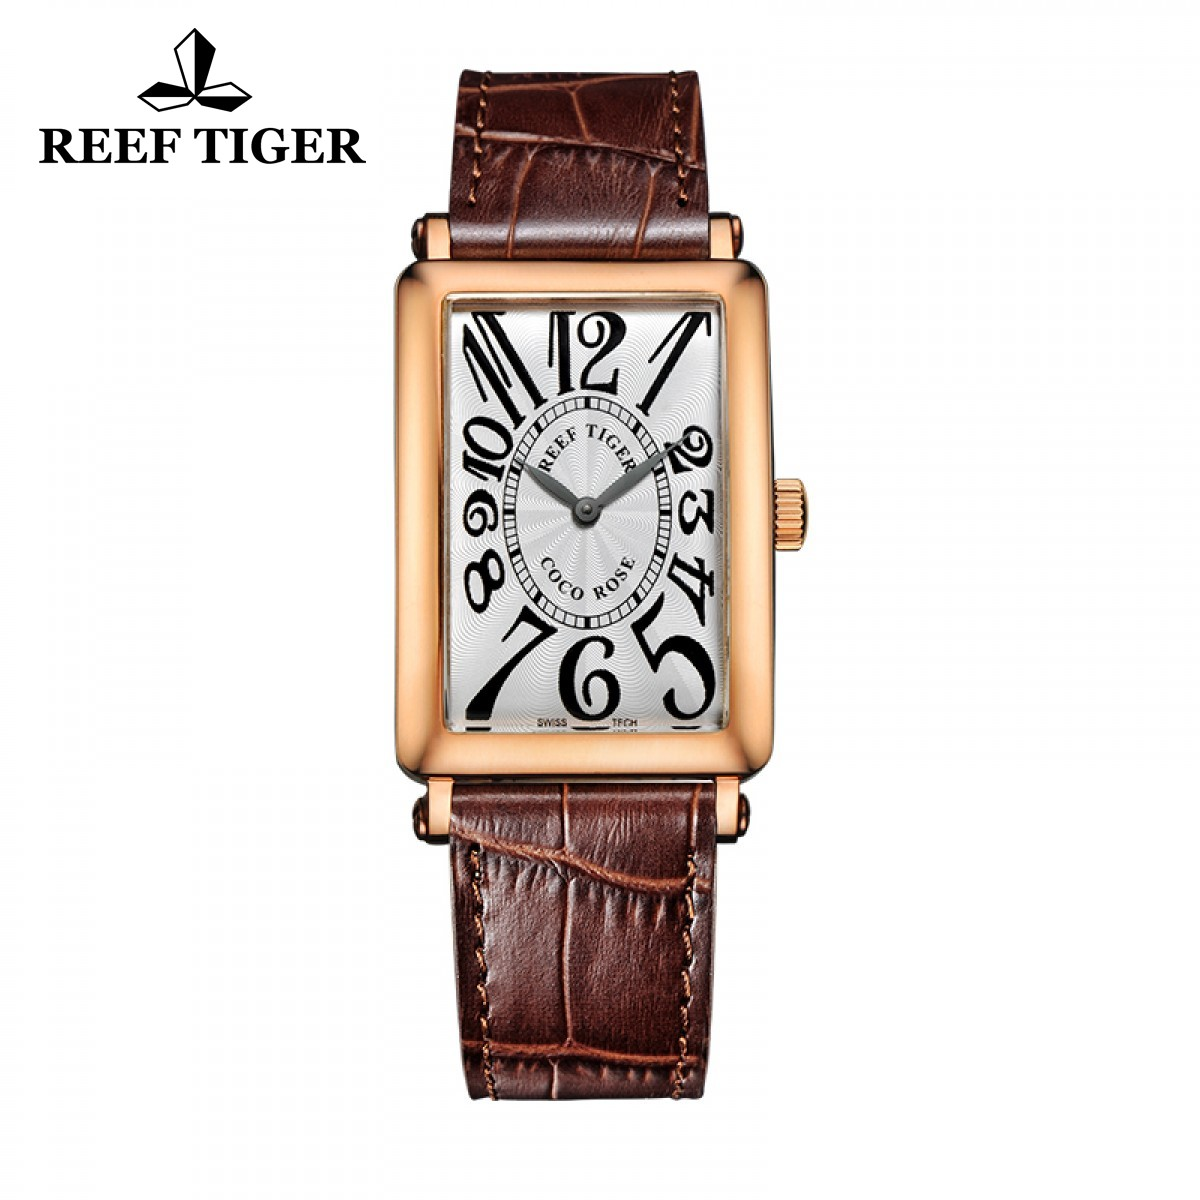 Reef Tiger Lady Fashion Watch Rose Gold Case White Dial Leather Strap Watch RGA172-PWSA